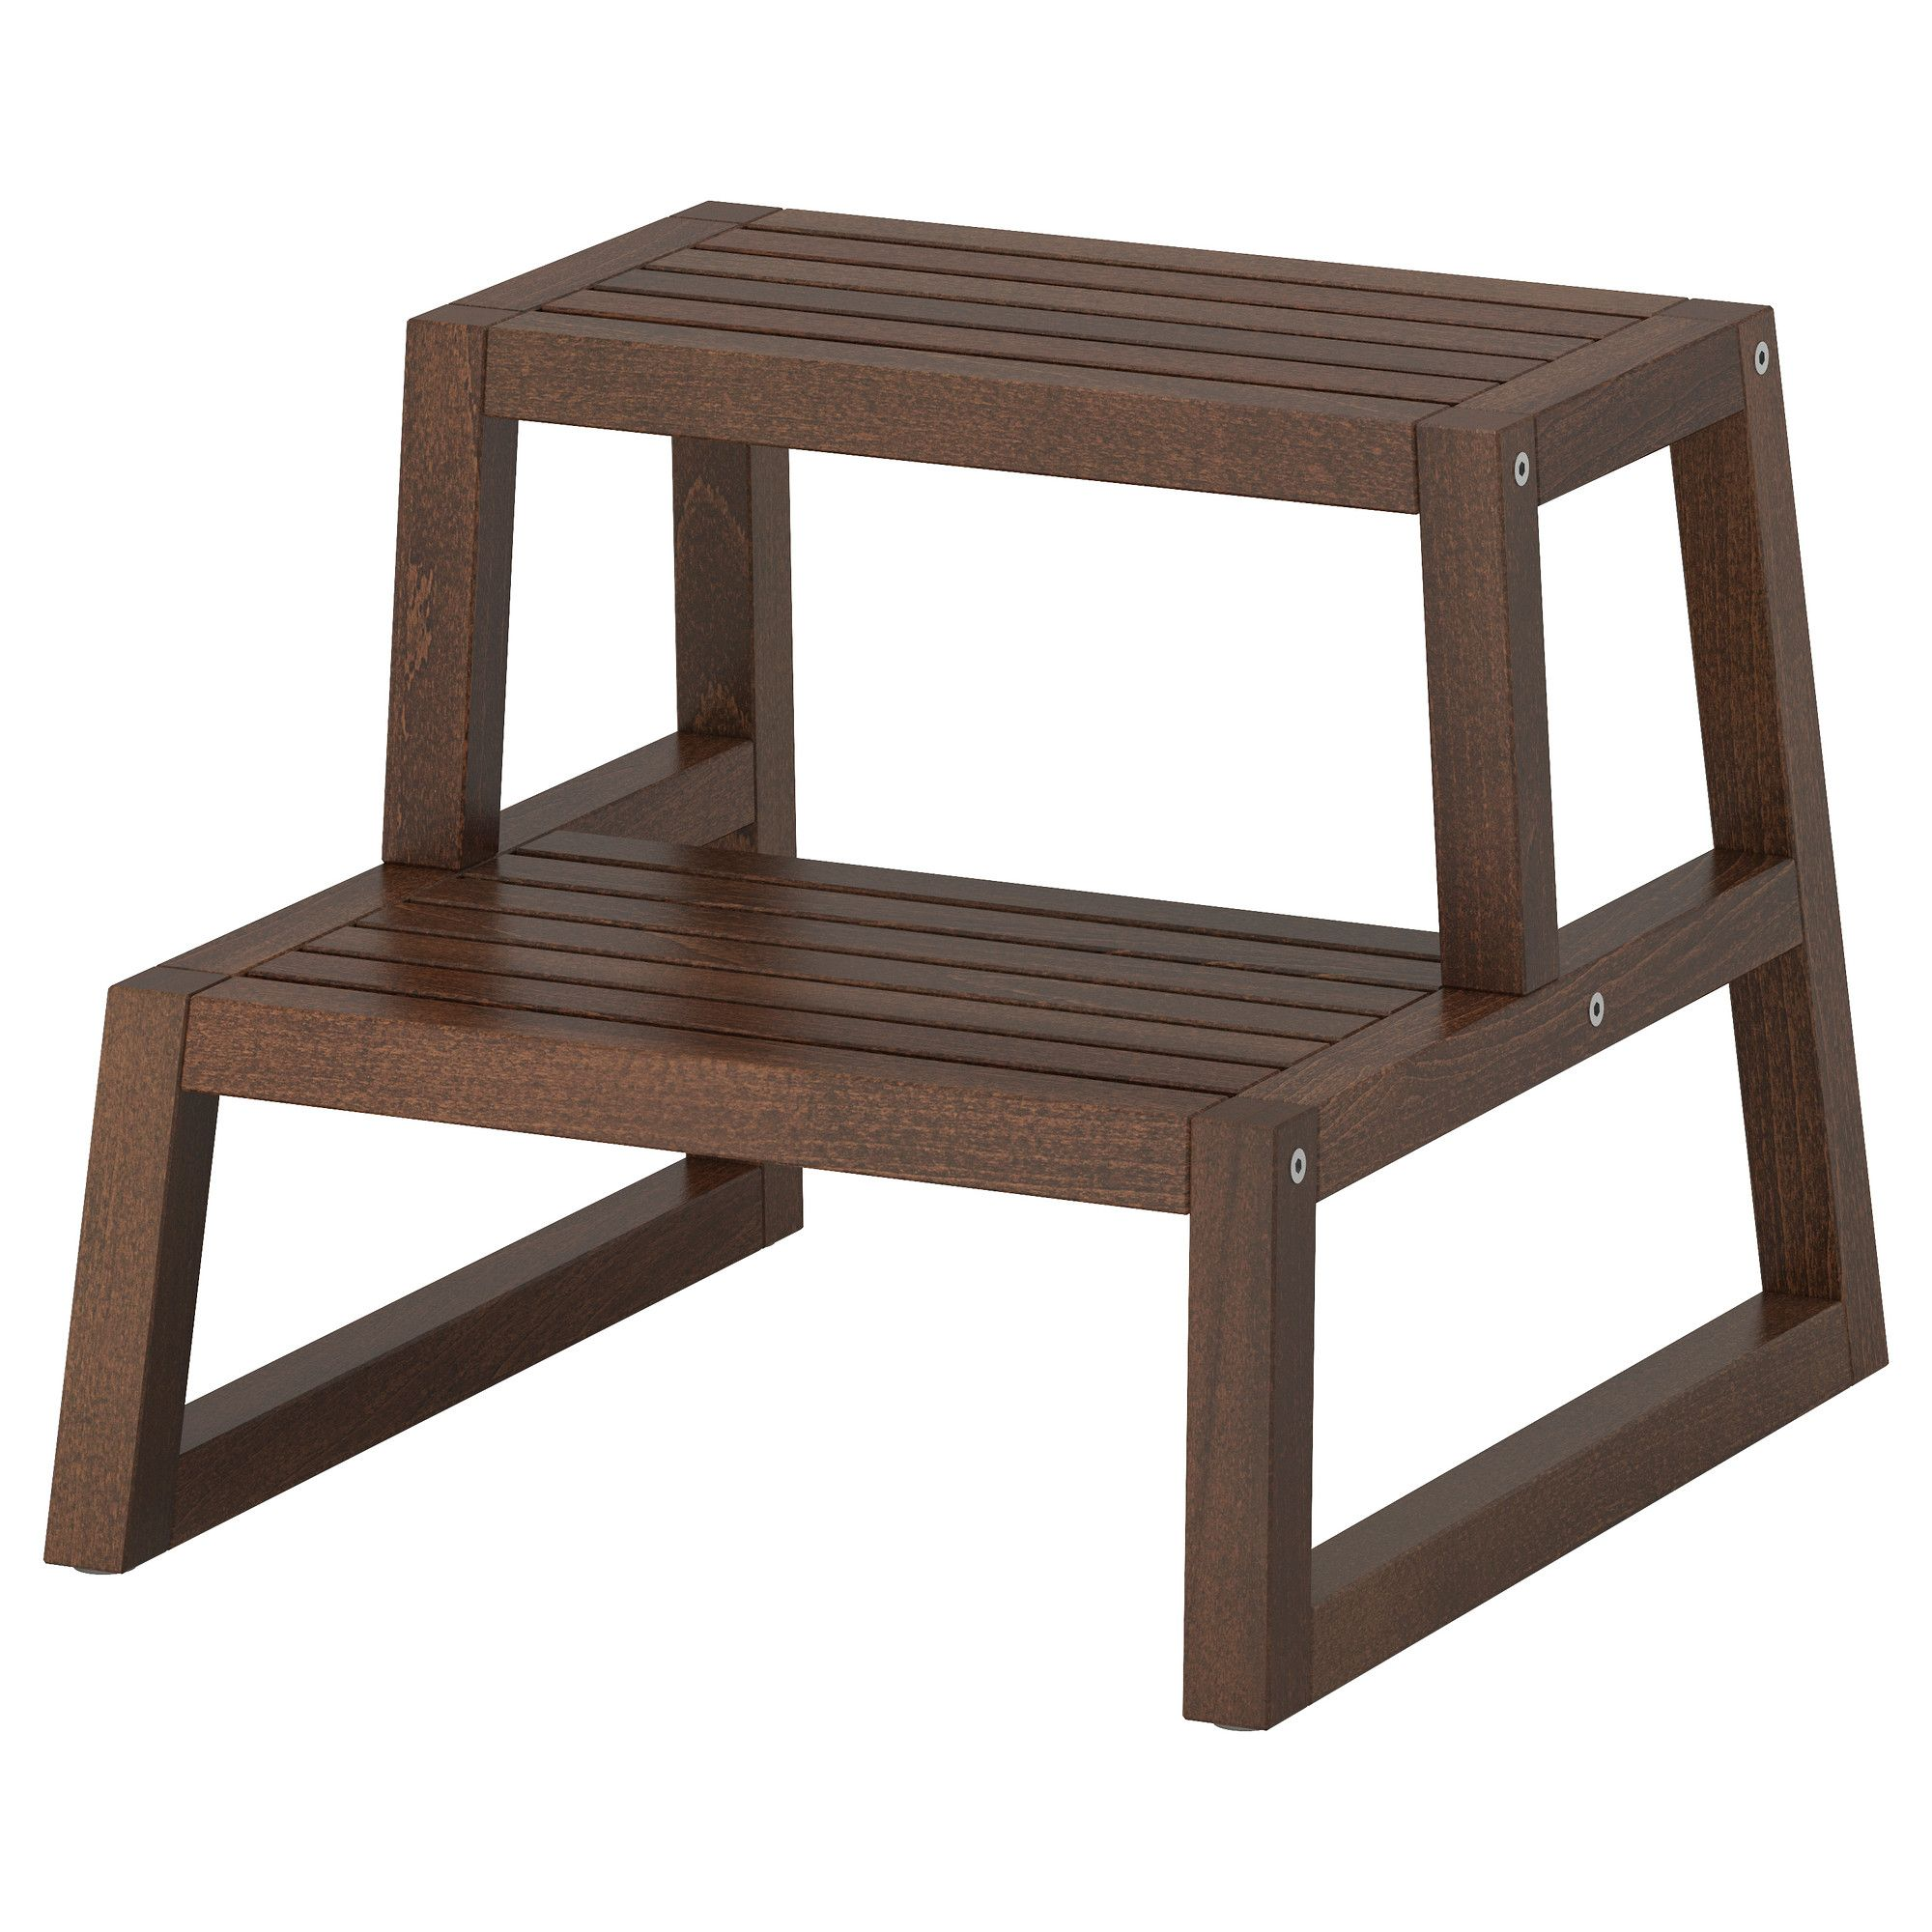 Bathroom Stools Amp Benches Ikea Seating Bench Molger Step Stool Dark Brown  Width Quot Depth Pe S